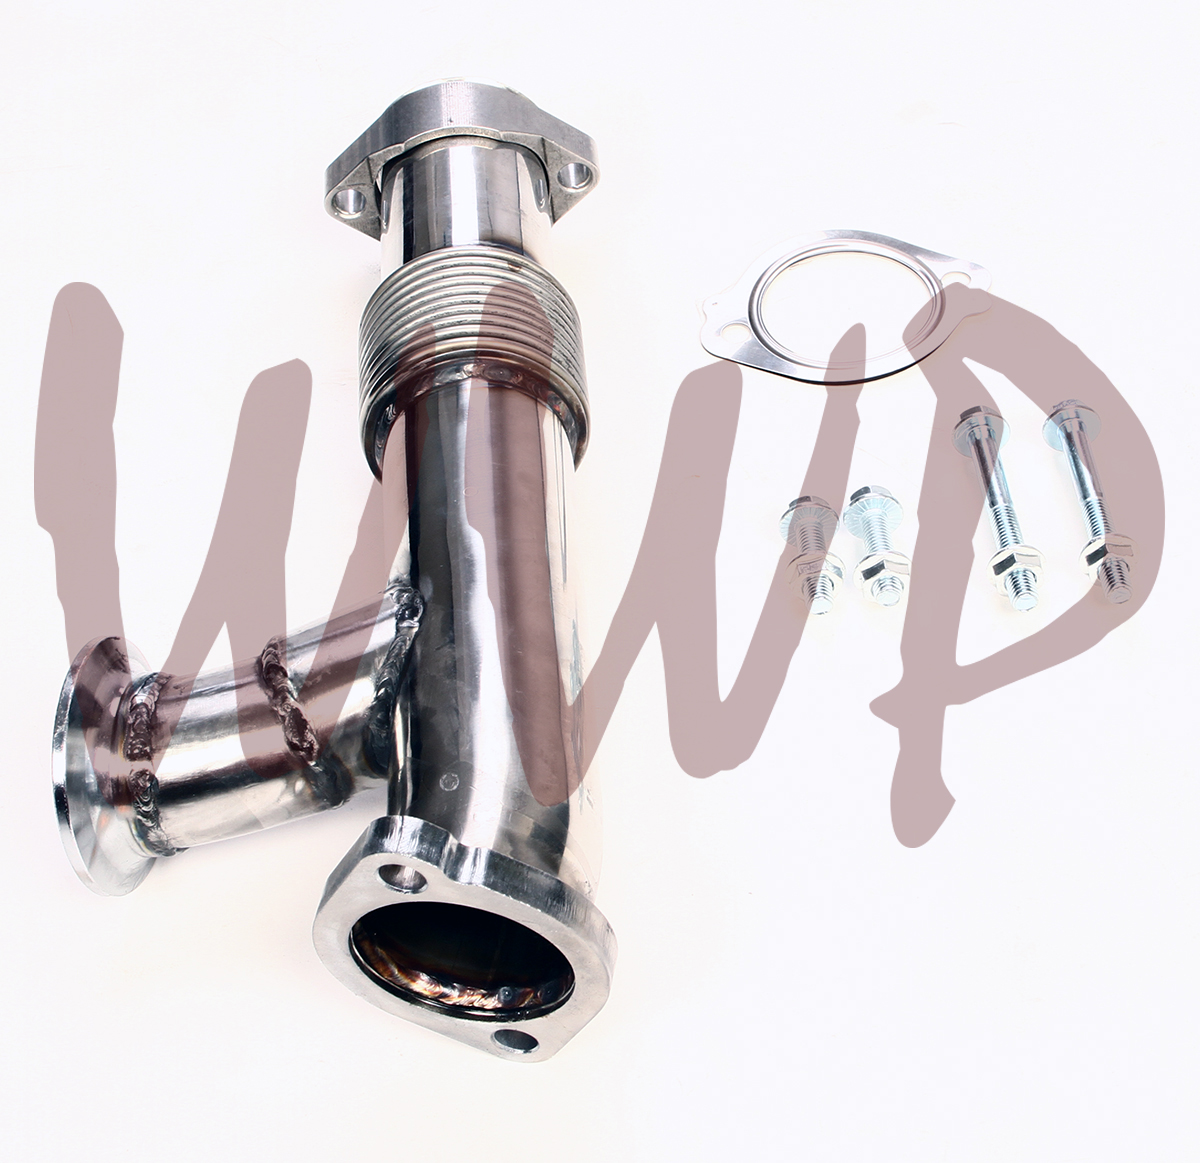 GXP Stainless Steel Performance Exhaust Manifolds /& Gaskets Compatible with 2003-2007 Ford 6.0 Powerstroke Diesel